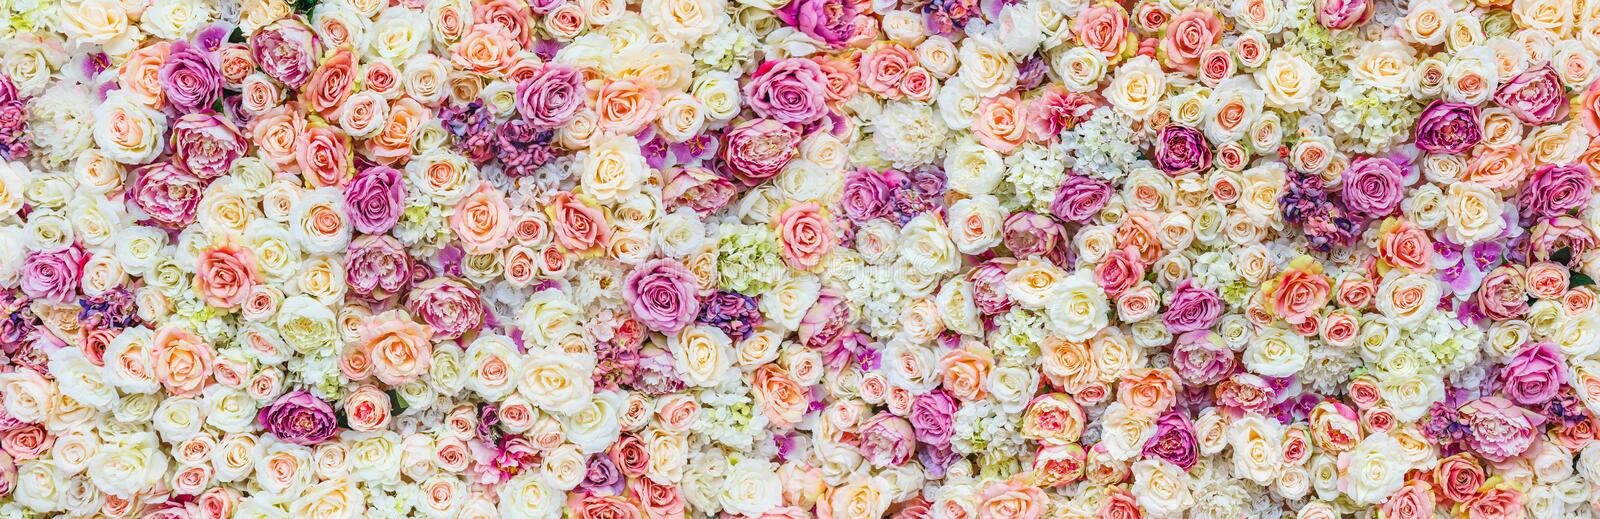 Flowers wall background with amazing red and white roses, Wedding decoration, hand made royalty free stock photography